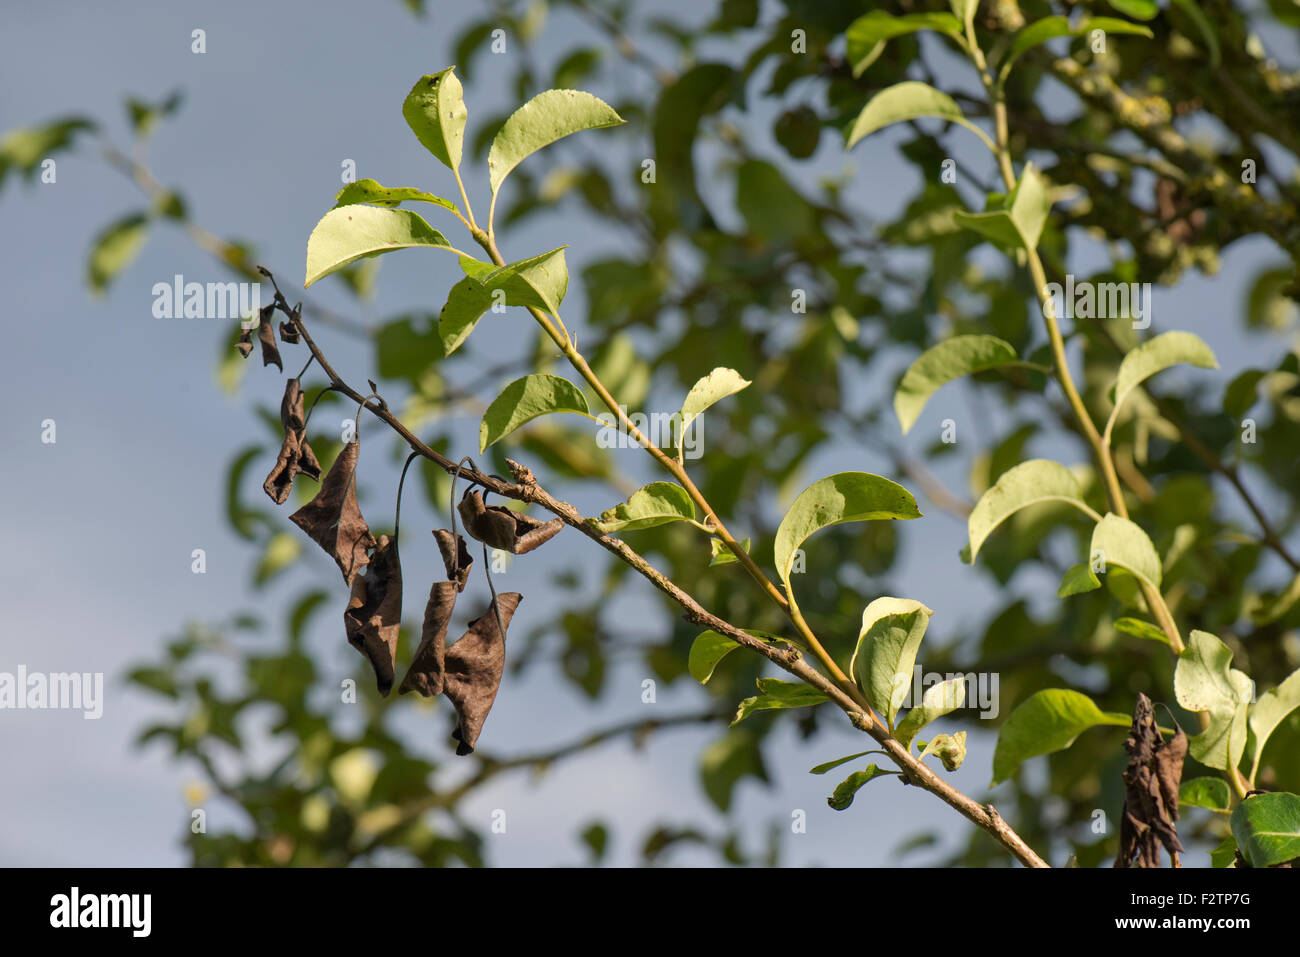 Branch dieback on a pear caused by a canker, Neonectria ditissima, at the base of the damage, Berkshire, September - Stock Image